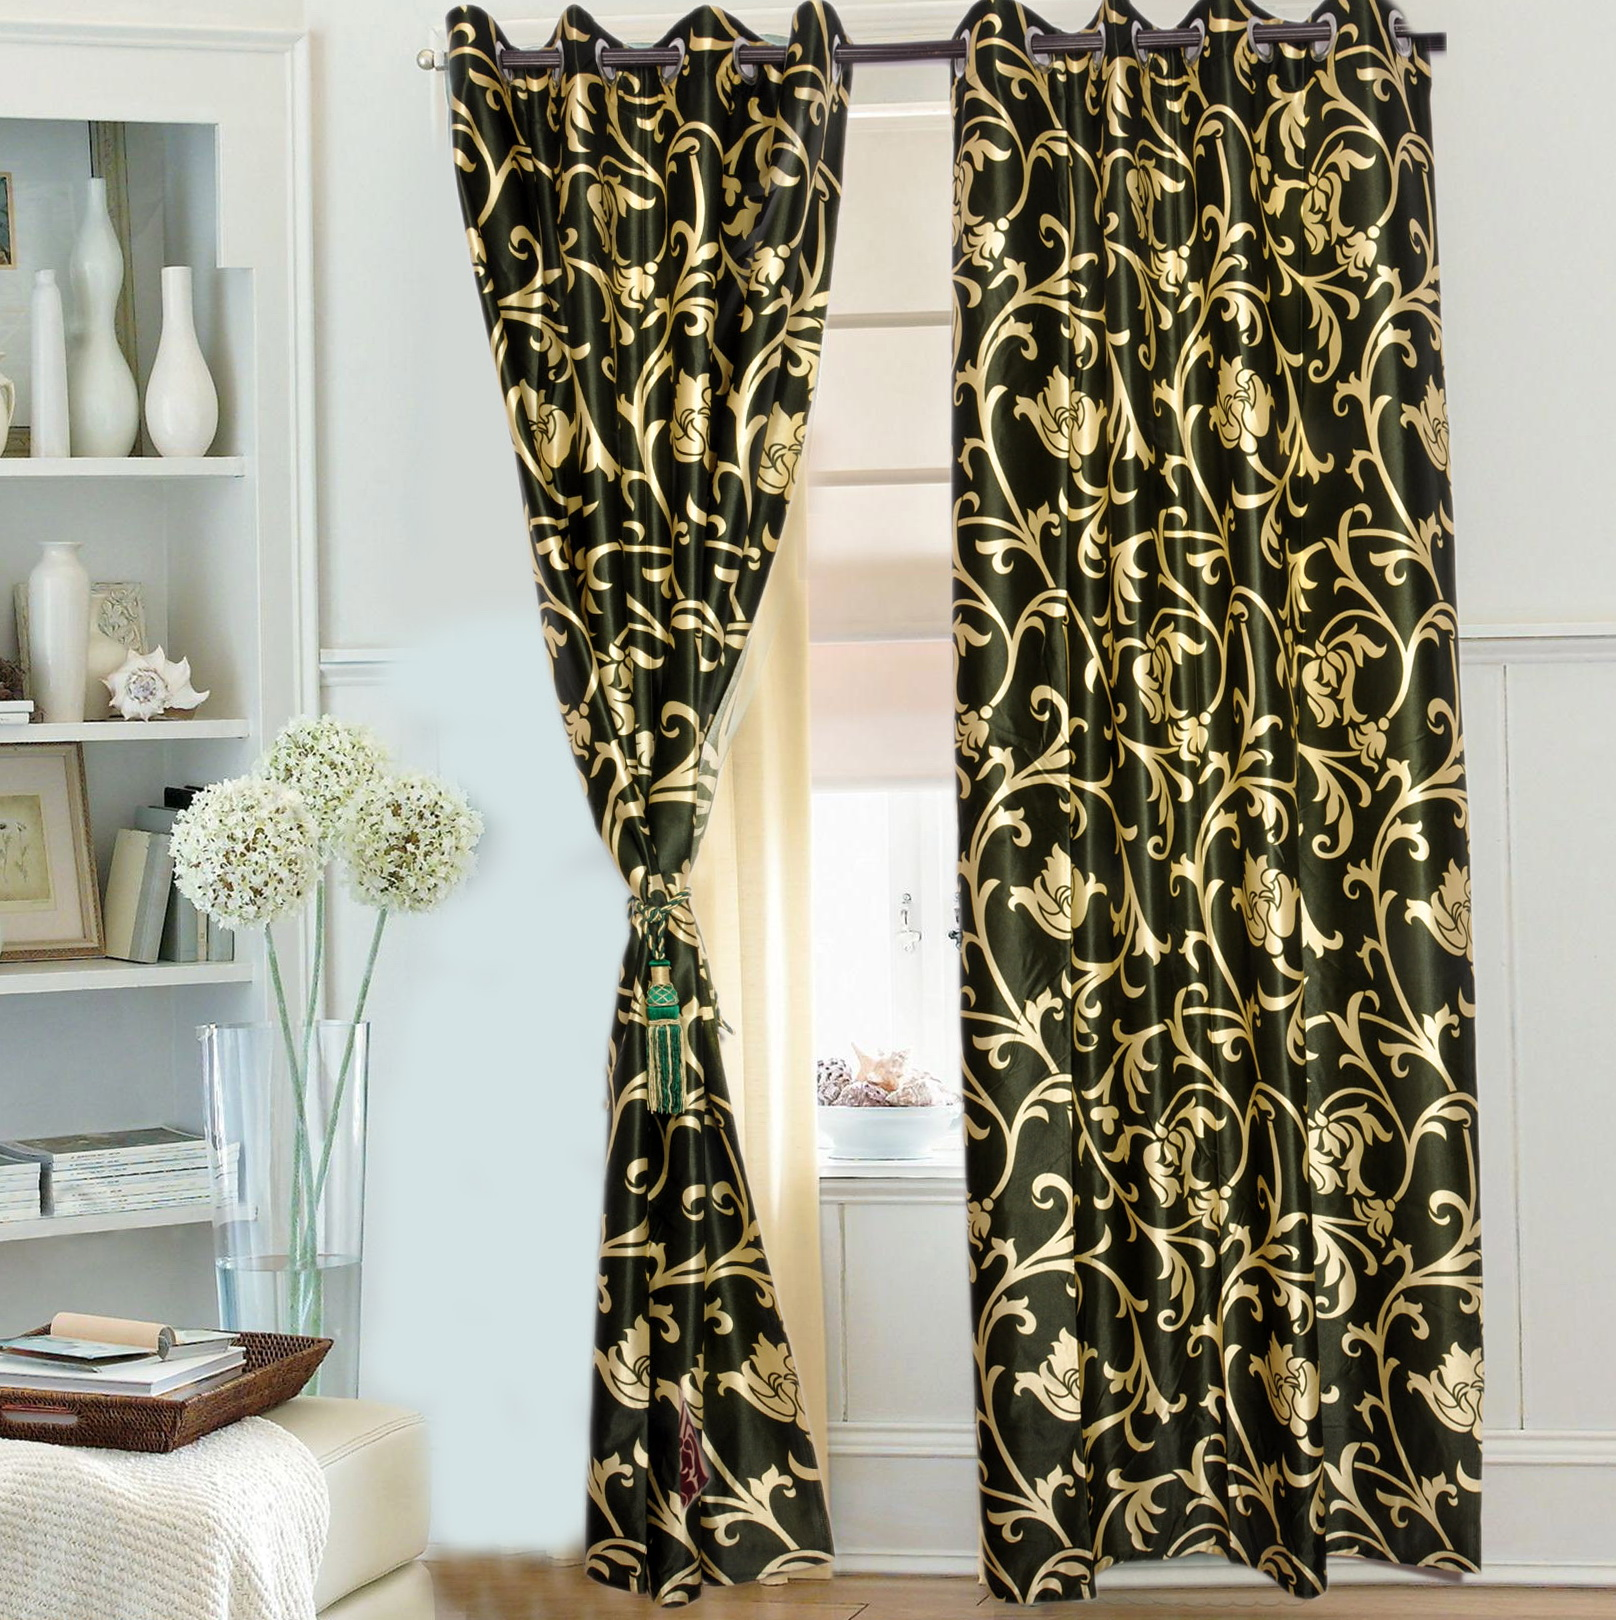 window threshold musical transom nate near target room cool custom valances seat bay drapes living curtains berkus soundtrack lowes large french with for curtain windows me modern online livingroom doors walmart ideas